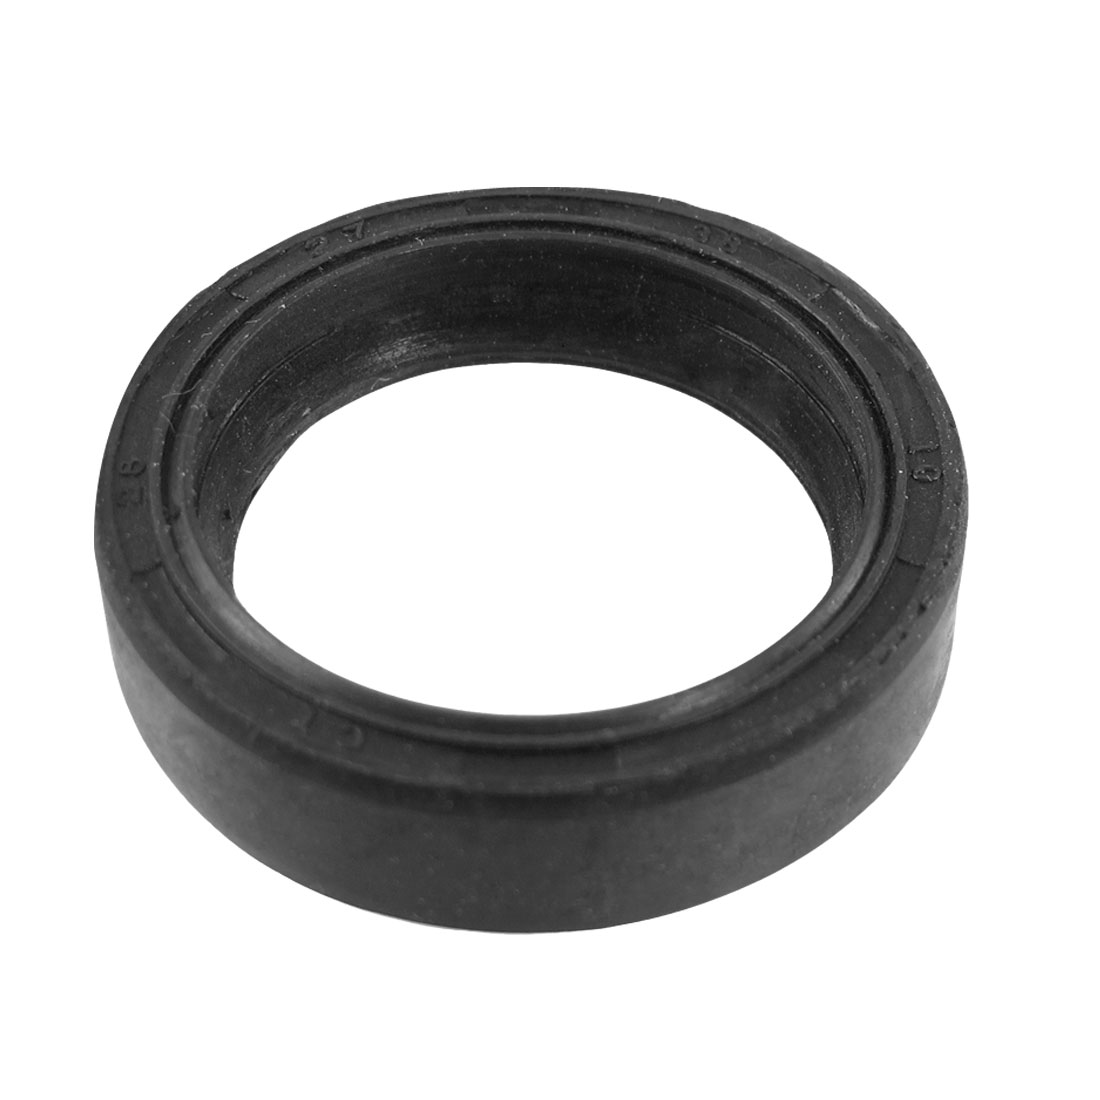 27mm x 38mm x 10mm Metric Double Lipped Rotary Shaft Oil Seal TC